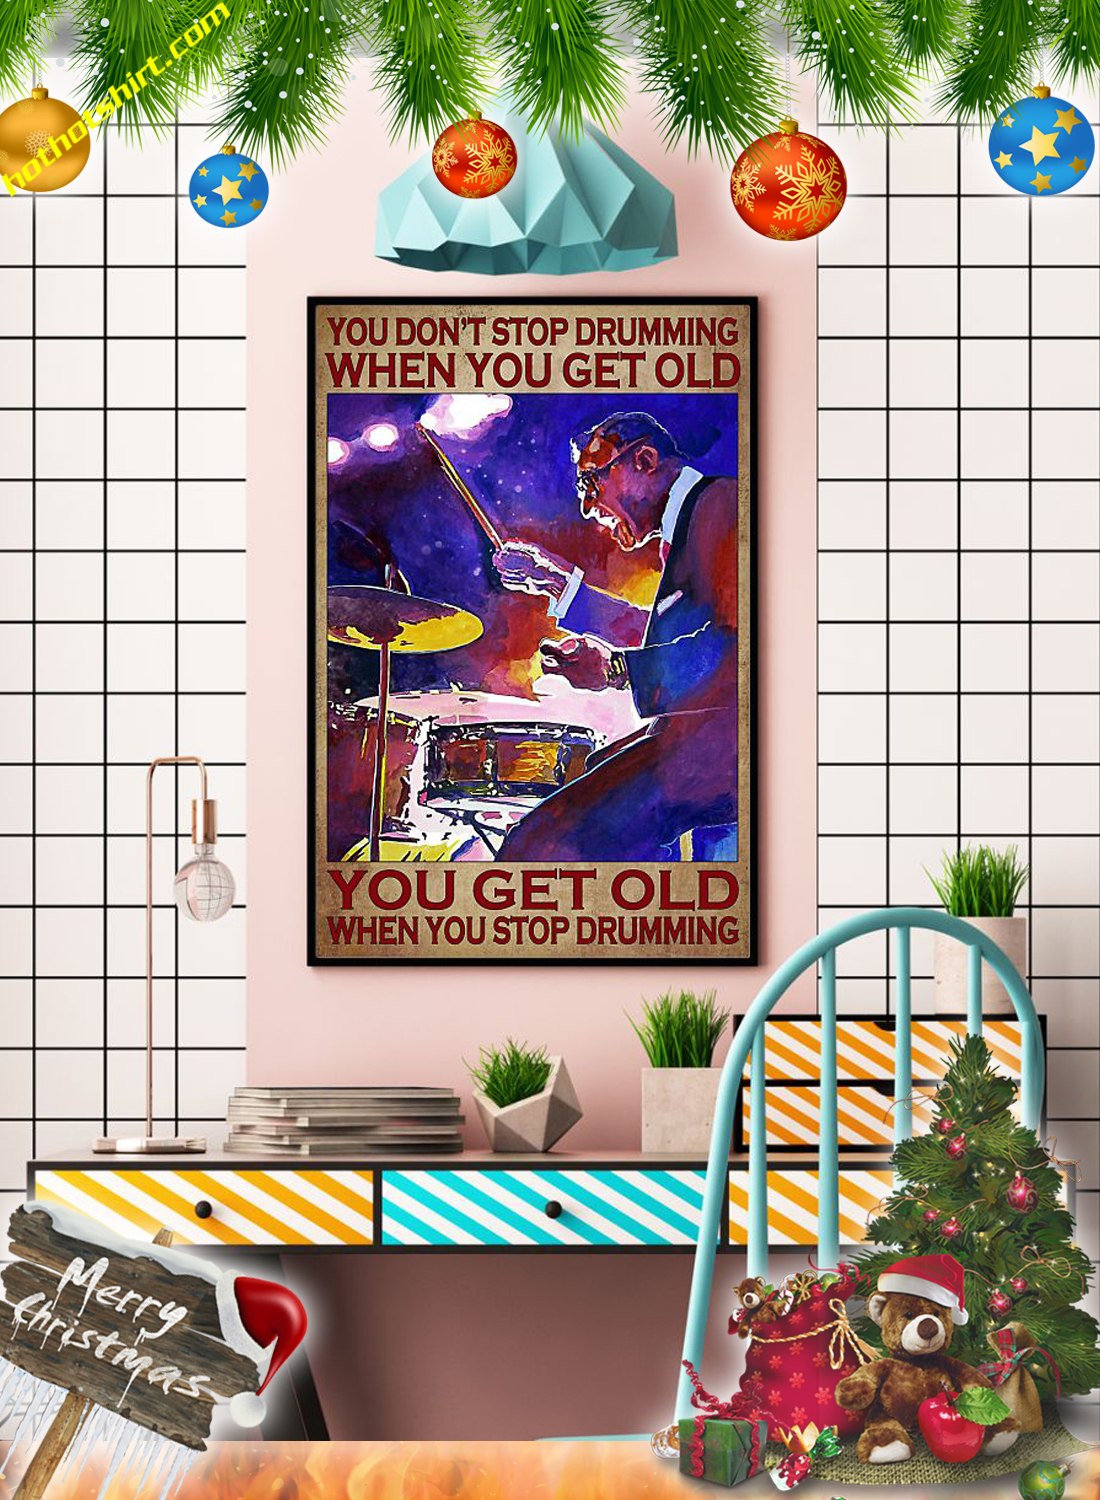 You don't stop drumming when you get old poster 3